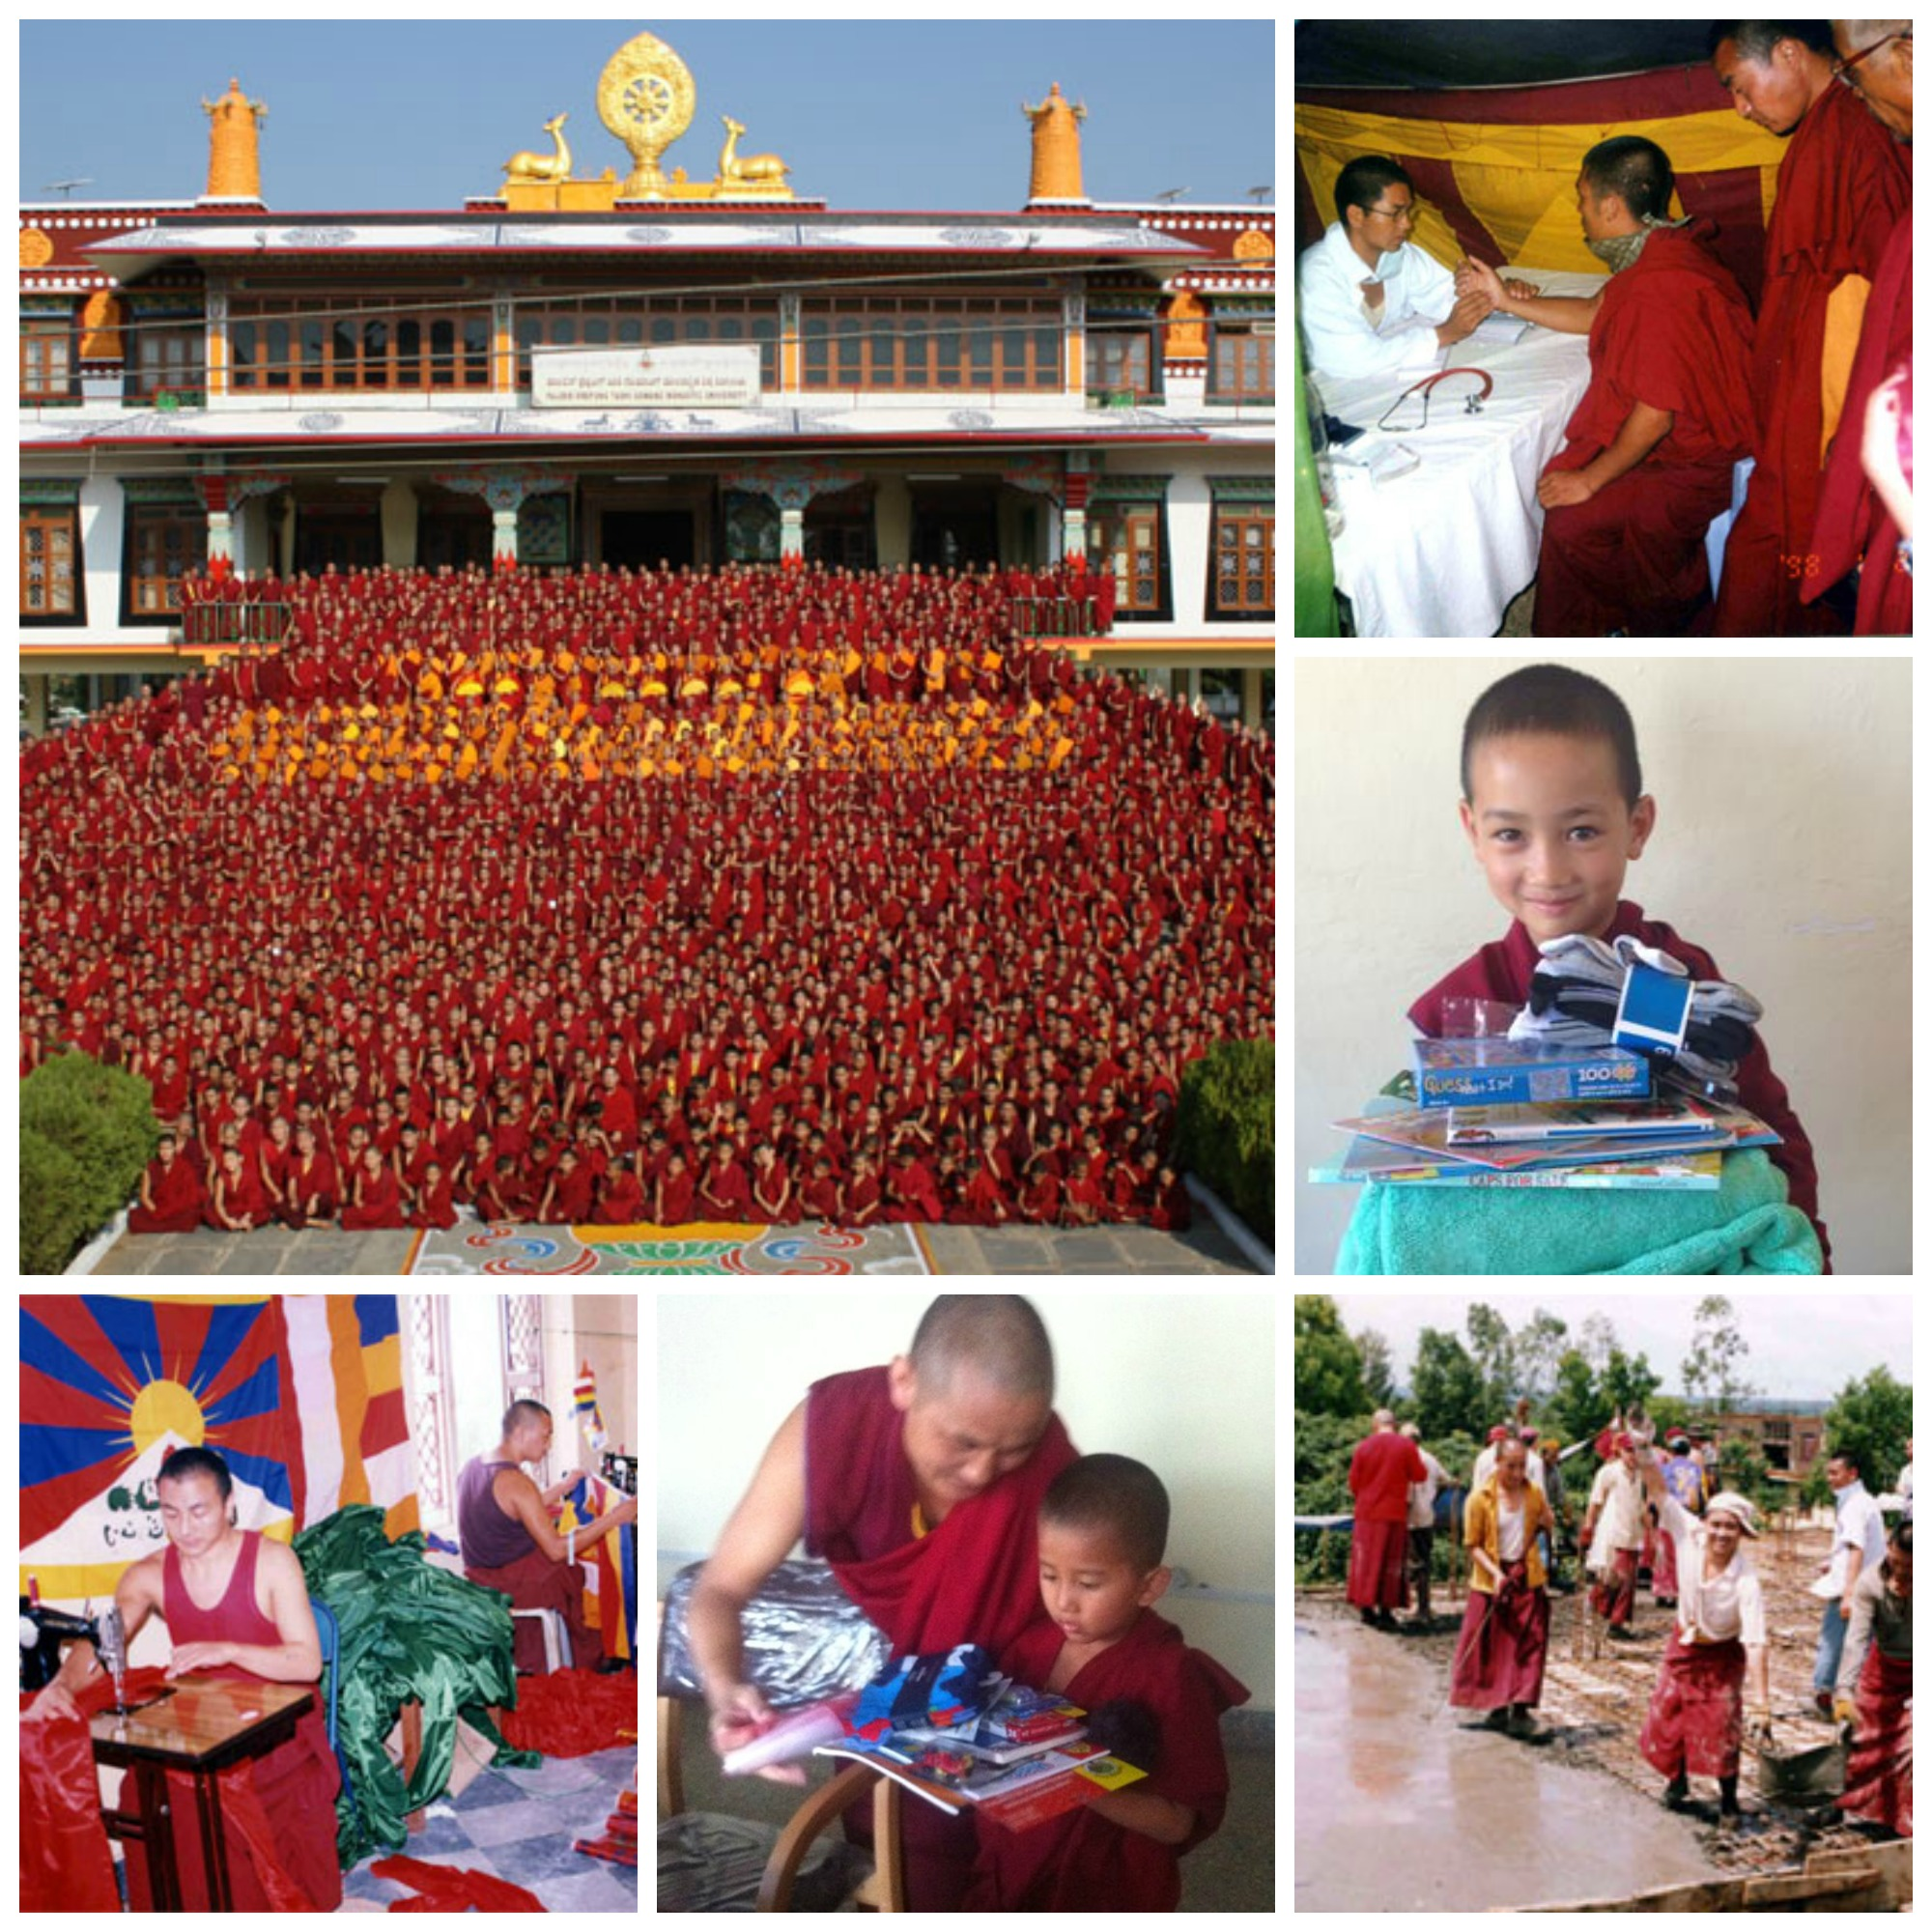 Sand Mandala & Other Events w/ Drepung Gomang Monks, March 8.